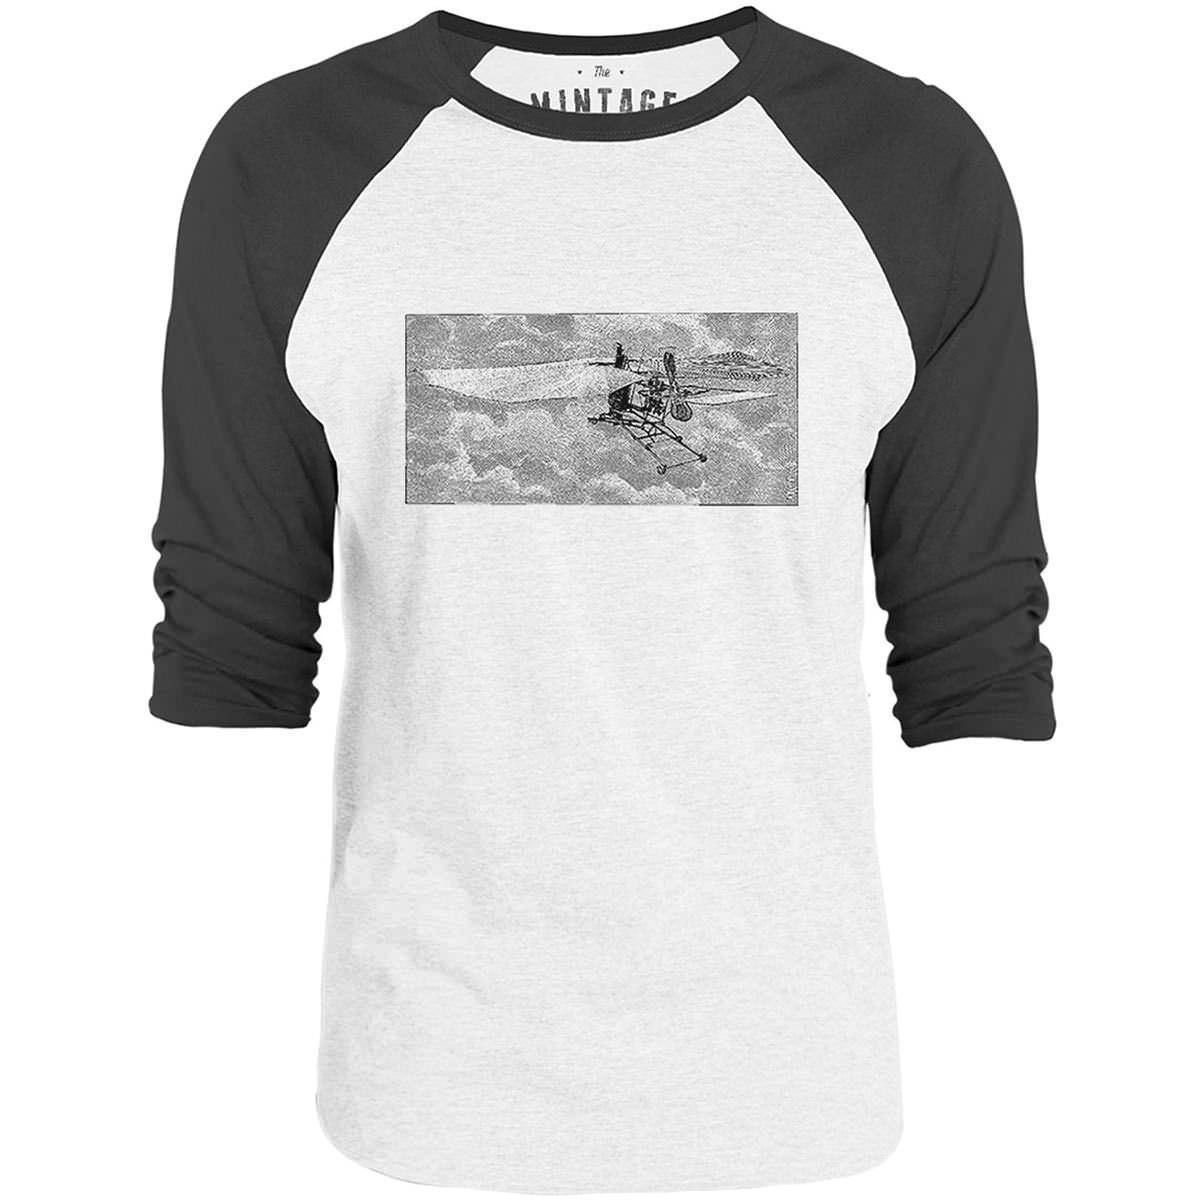 Mintage Prototype Flying Machine 3/4-Sleeve Raglan Baseball T-Shirt (White / Concrete)